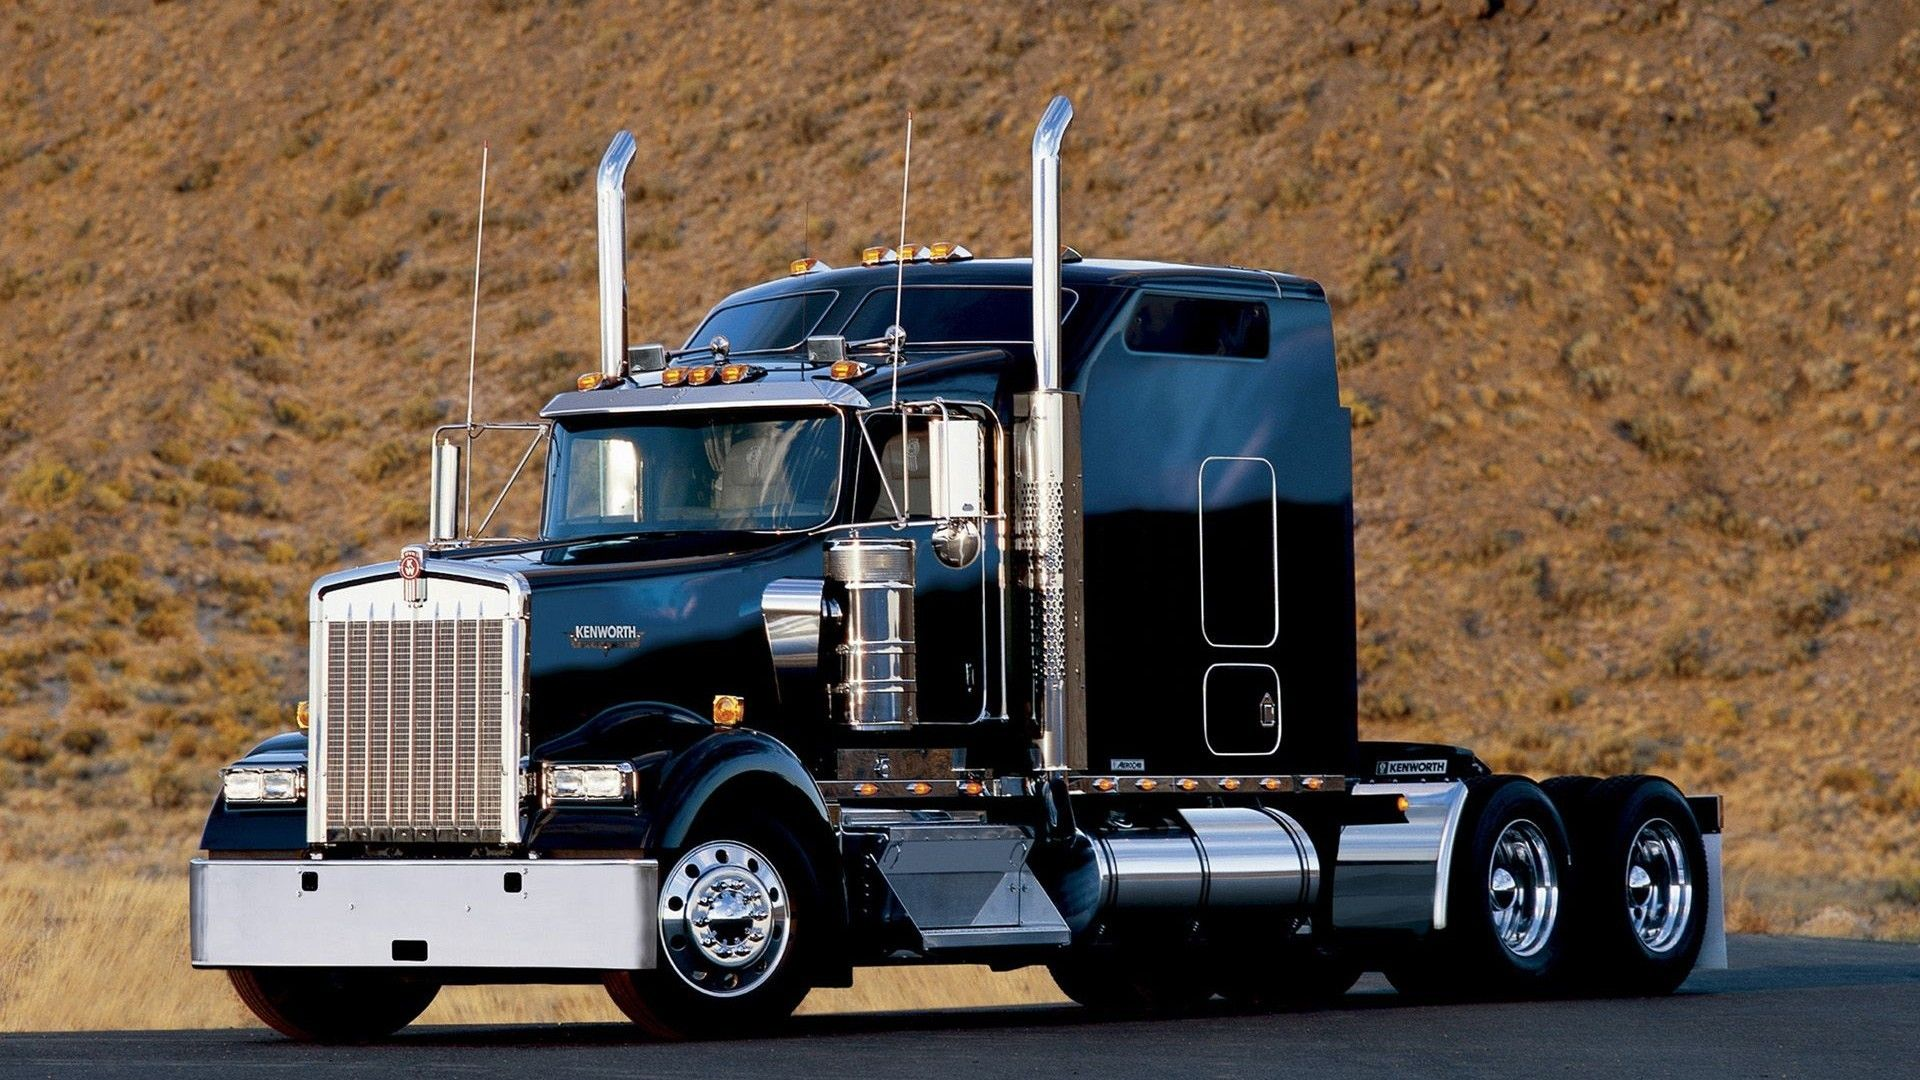 Kenworth W900 Semi Tractor 56 Wallpaper 1920x1080 215099